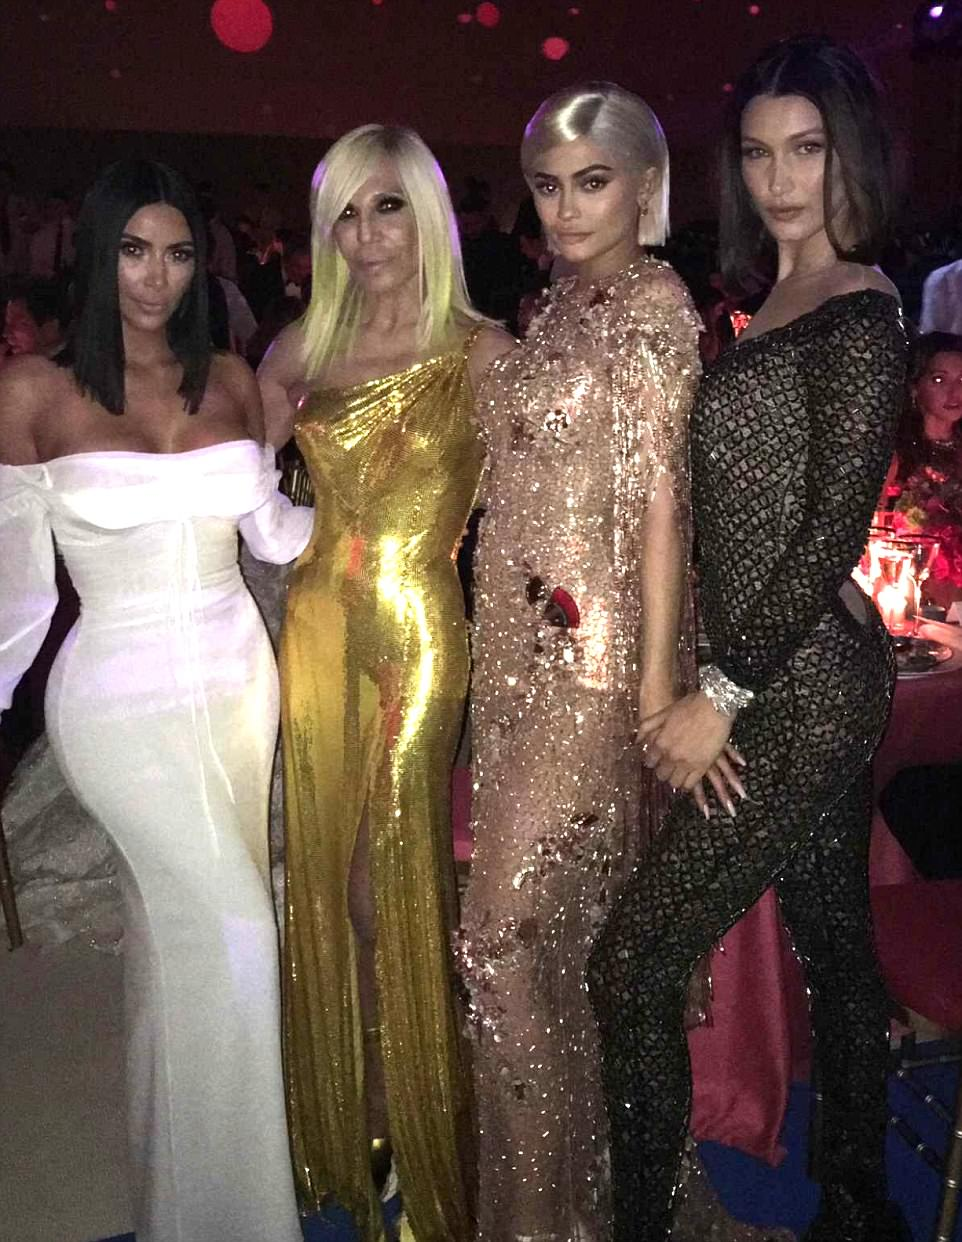 Wanna be in our gang? Kim also posed for Snaps with Donatella Versace, Kylie Jenner and Bella Hadid